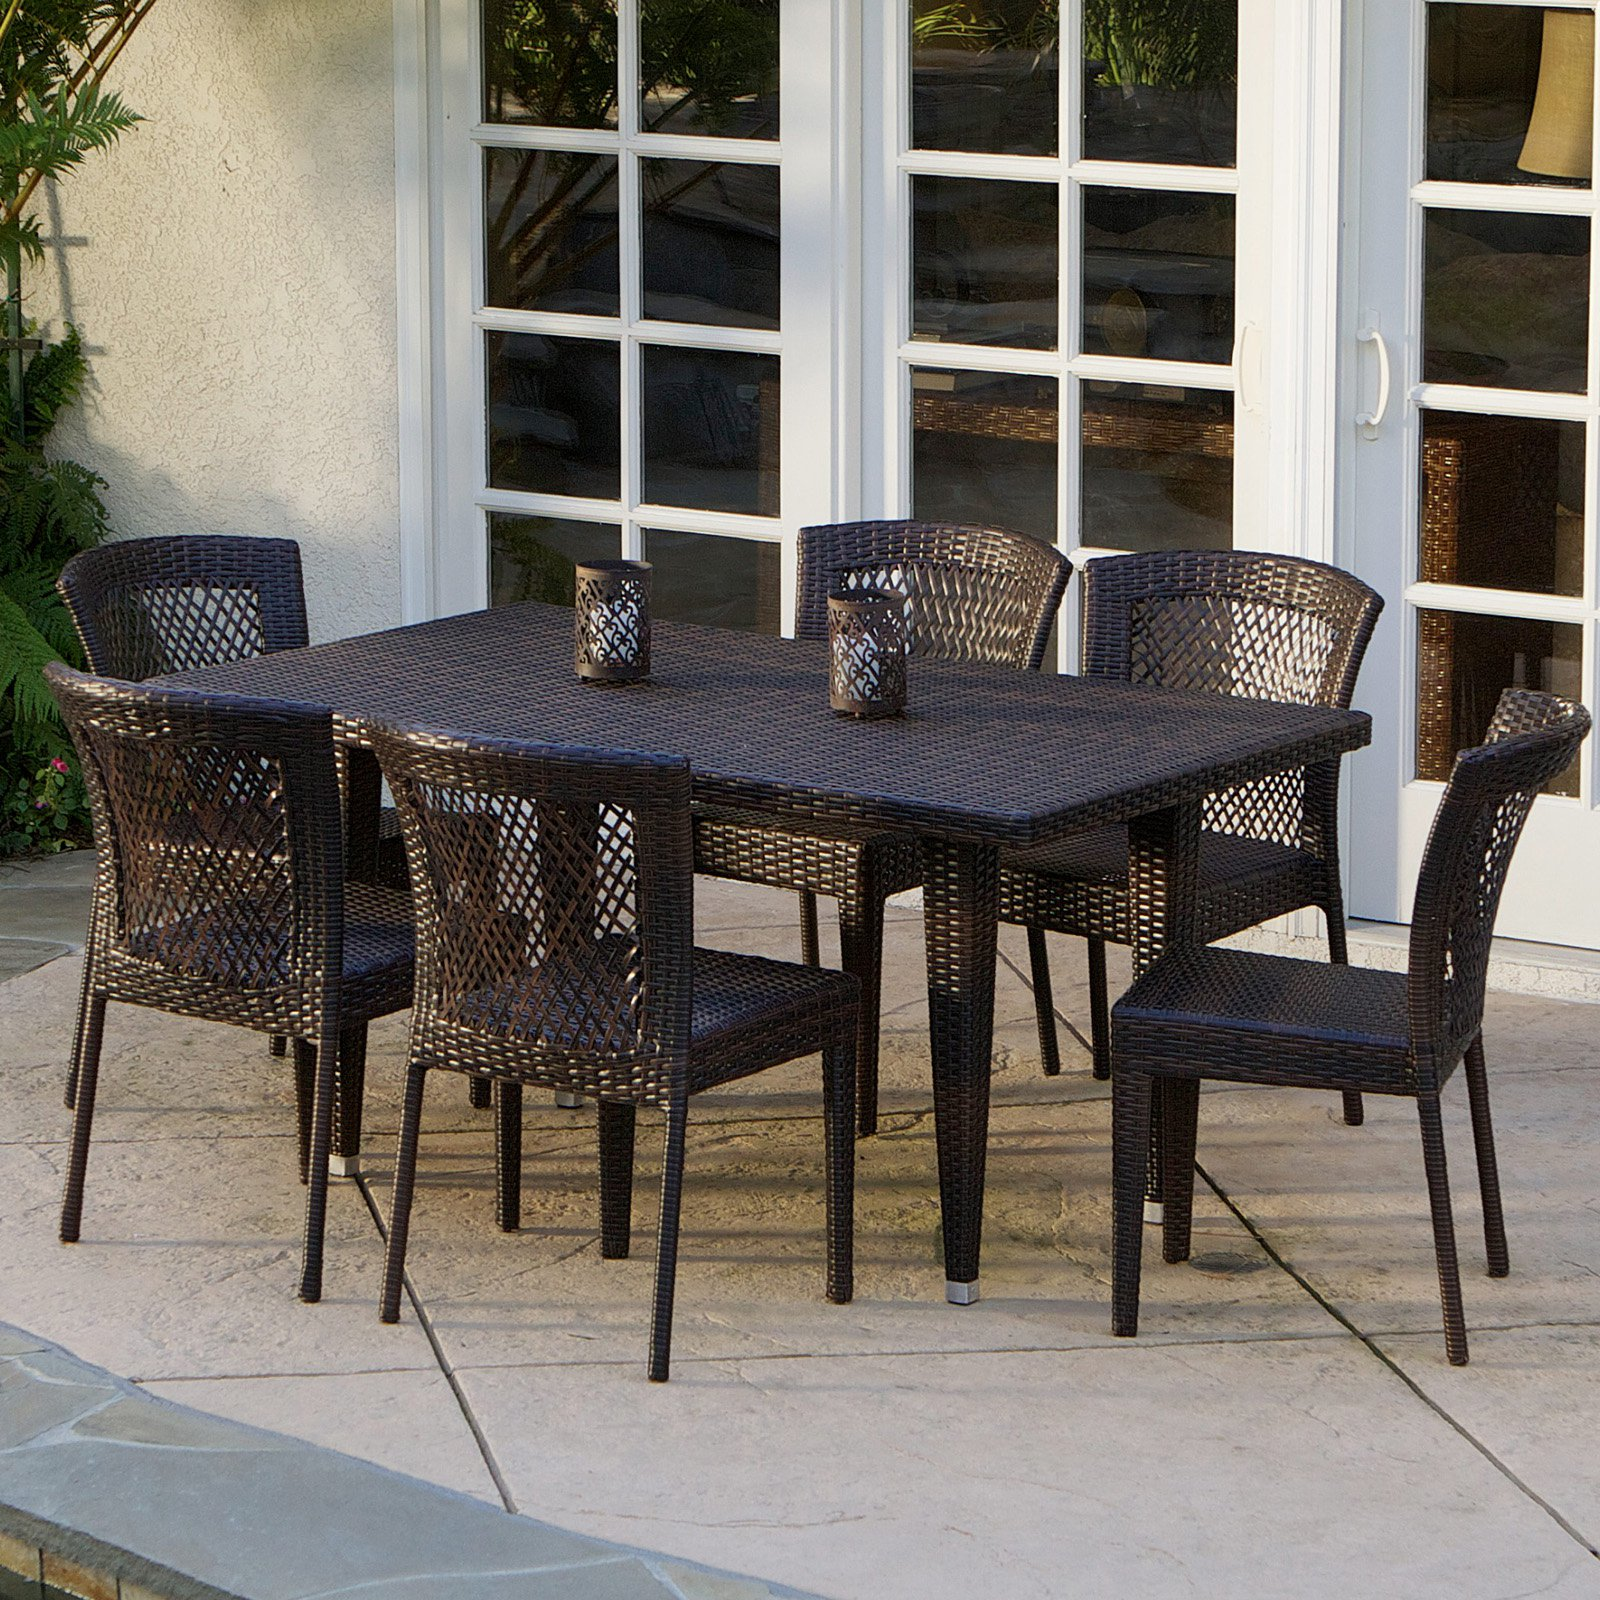 Dusk All-Weather Wicker Patio Dining Room Set Seats 6 by Overstock